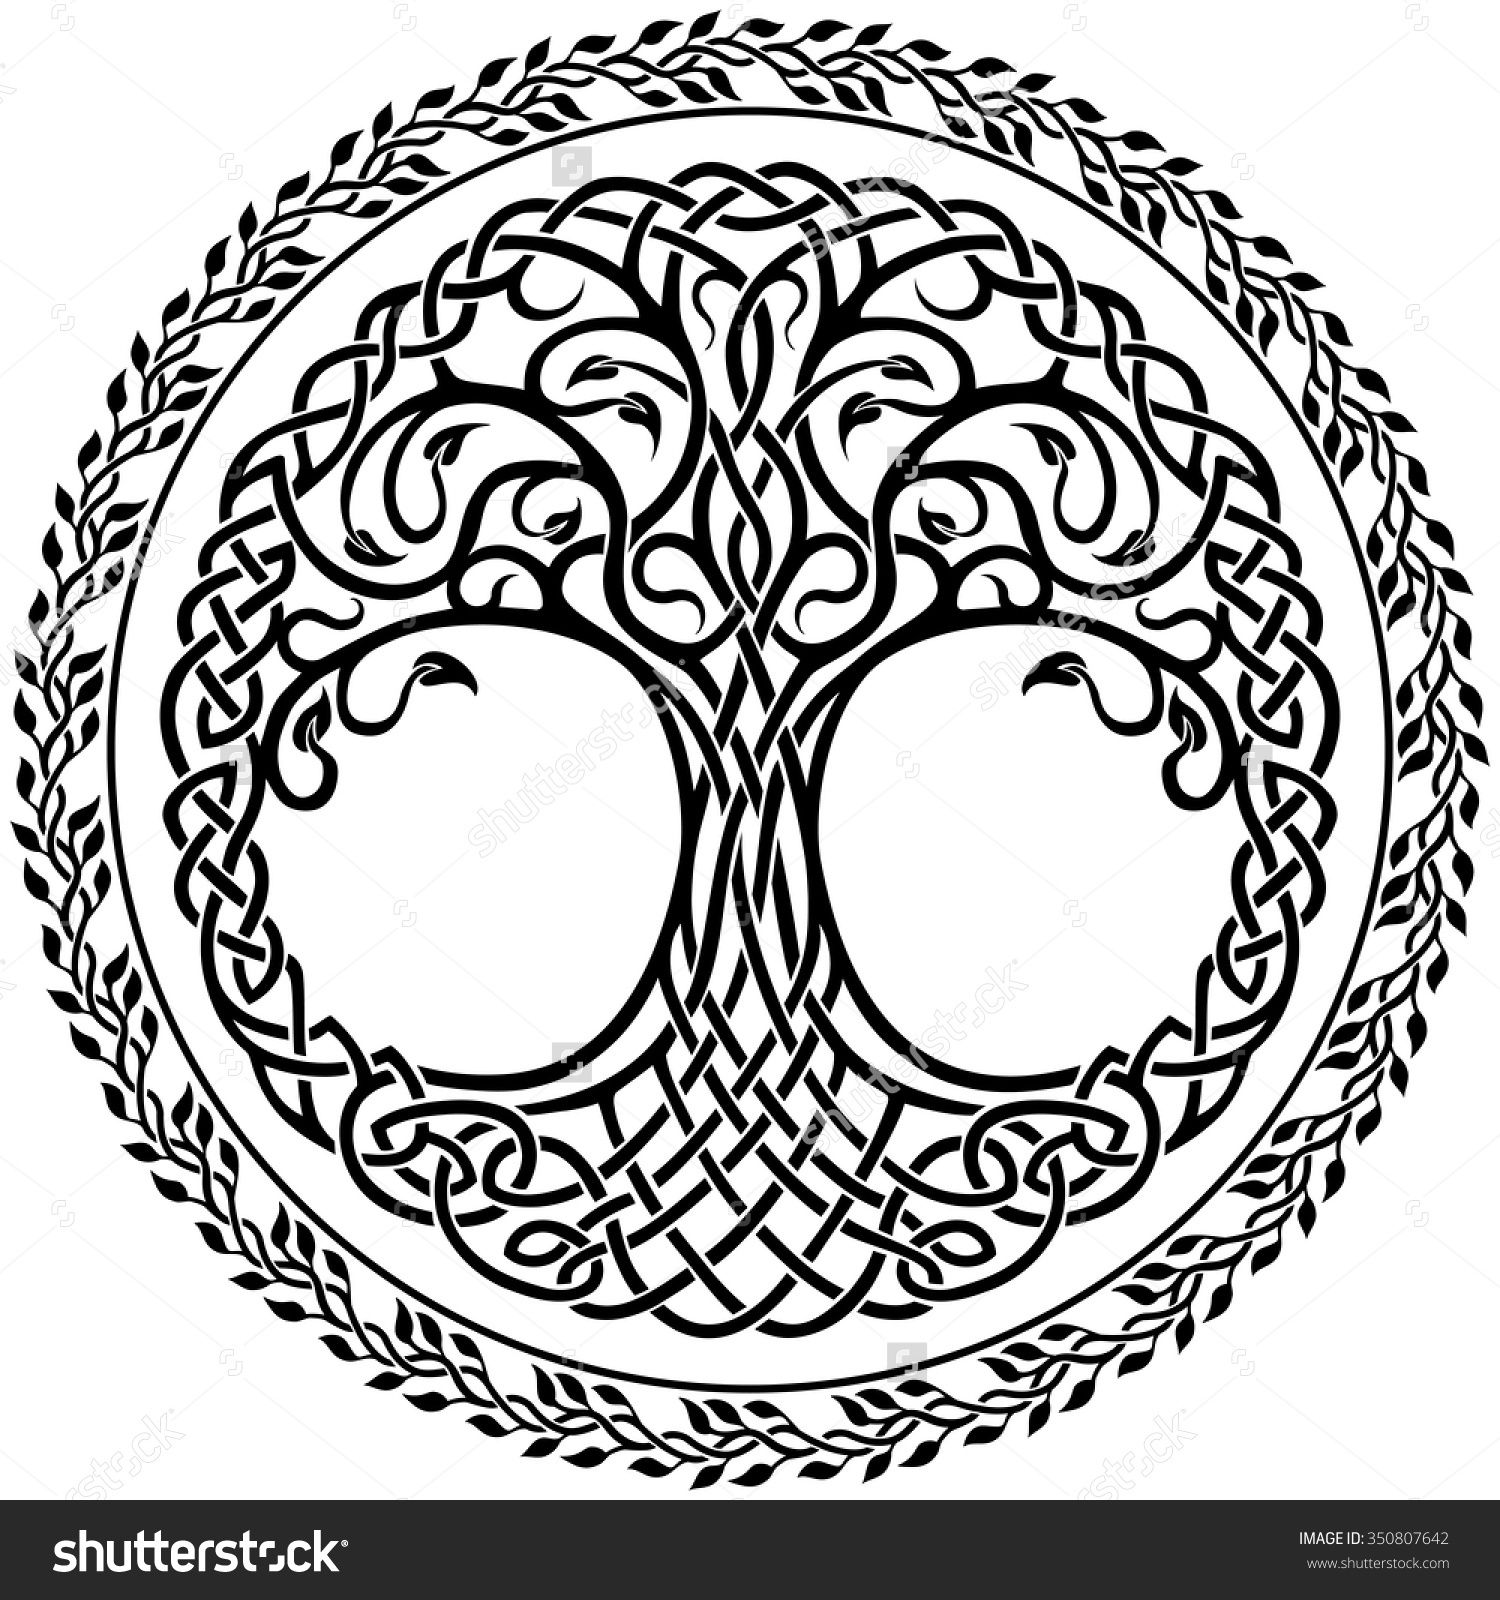 Vector ornament decorative celtic tree of life with floral round